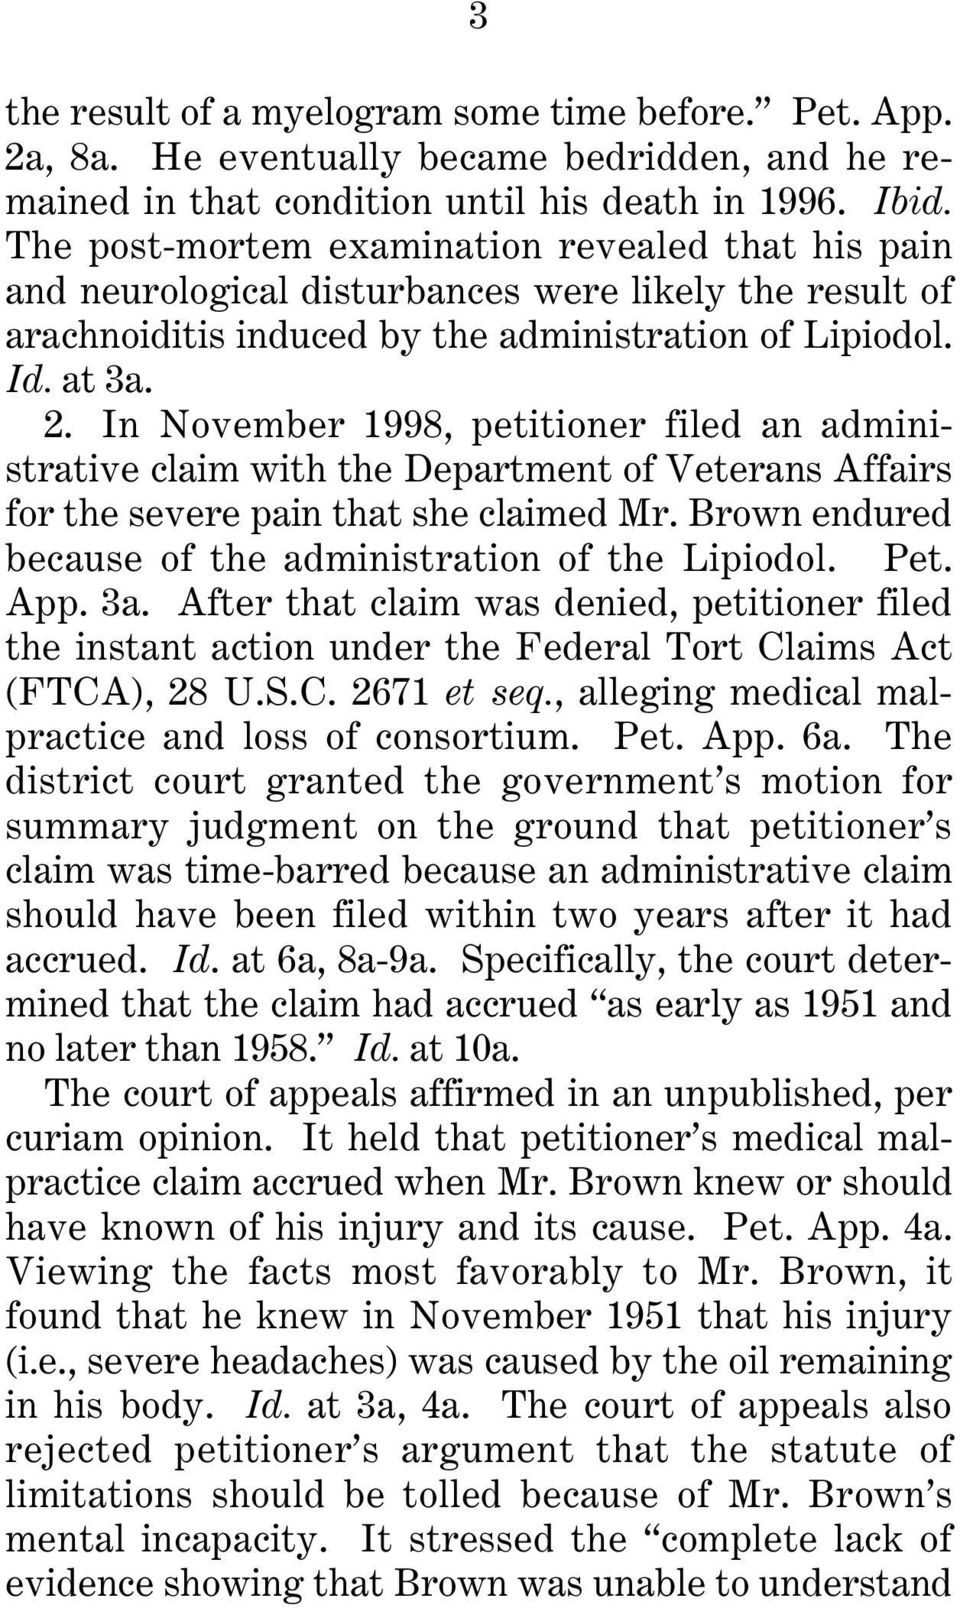 In November 1998, petitioner filed an administrative claim with the Department of Veterans Affairs for the severe pain that she claimed Mr. Brown endured because of the administration of the Lipiodol.